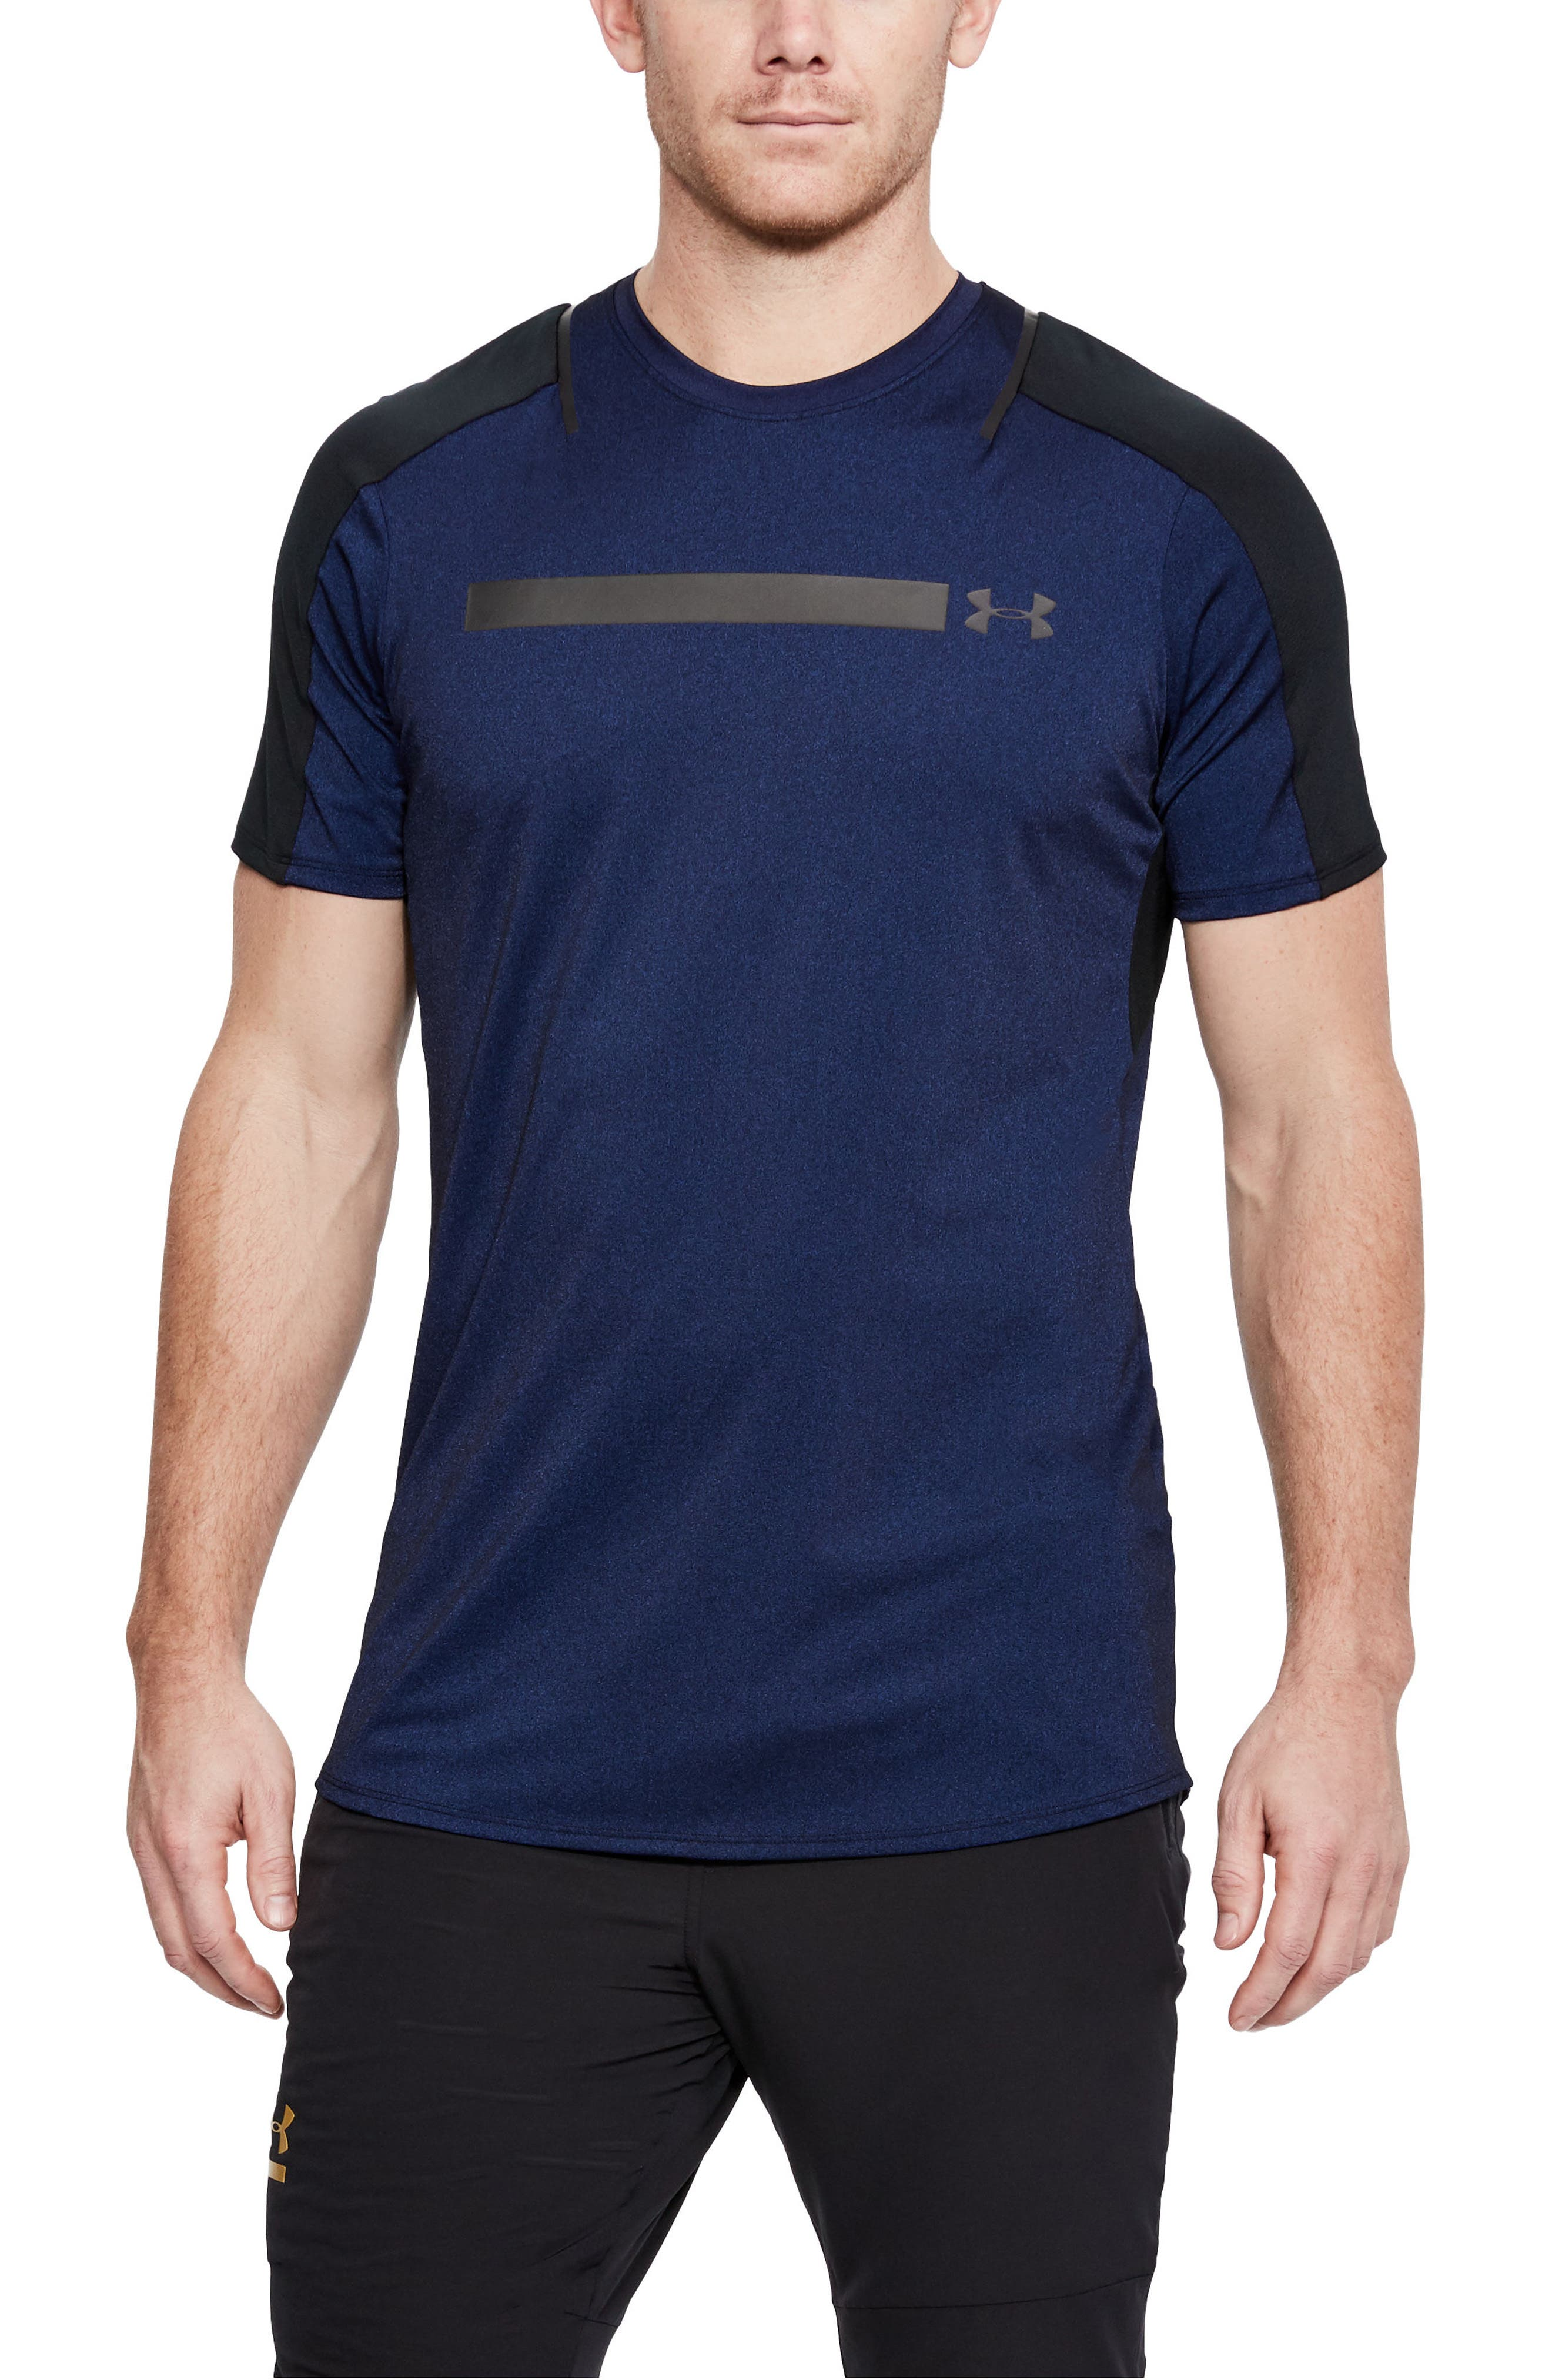 Perpetual Fitted Shirt,                         Main,                         color, FORMATION BLUE/ BLACK